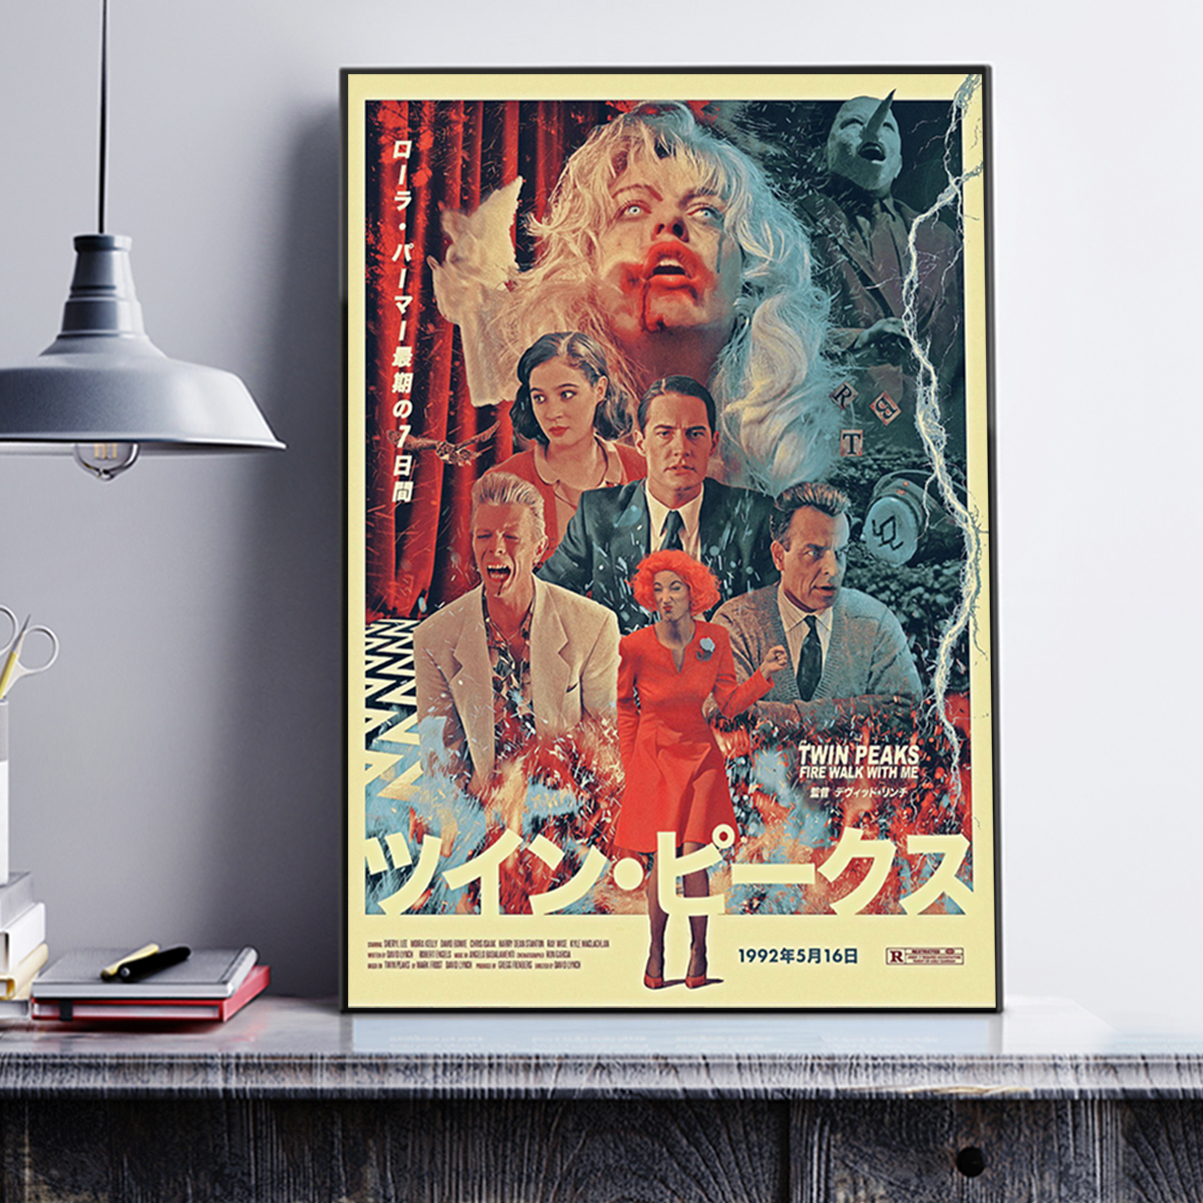 Twin peaks fire walk with me poster A3